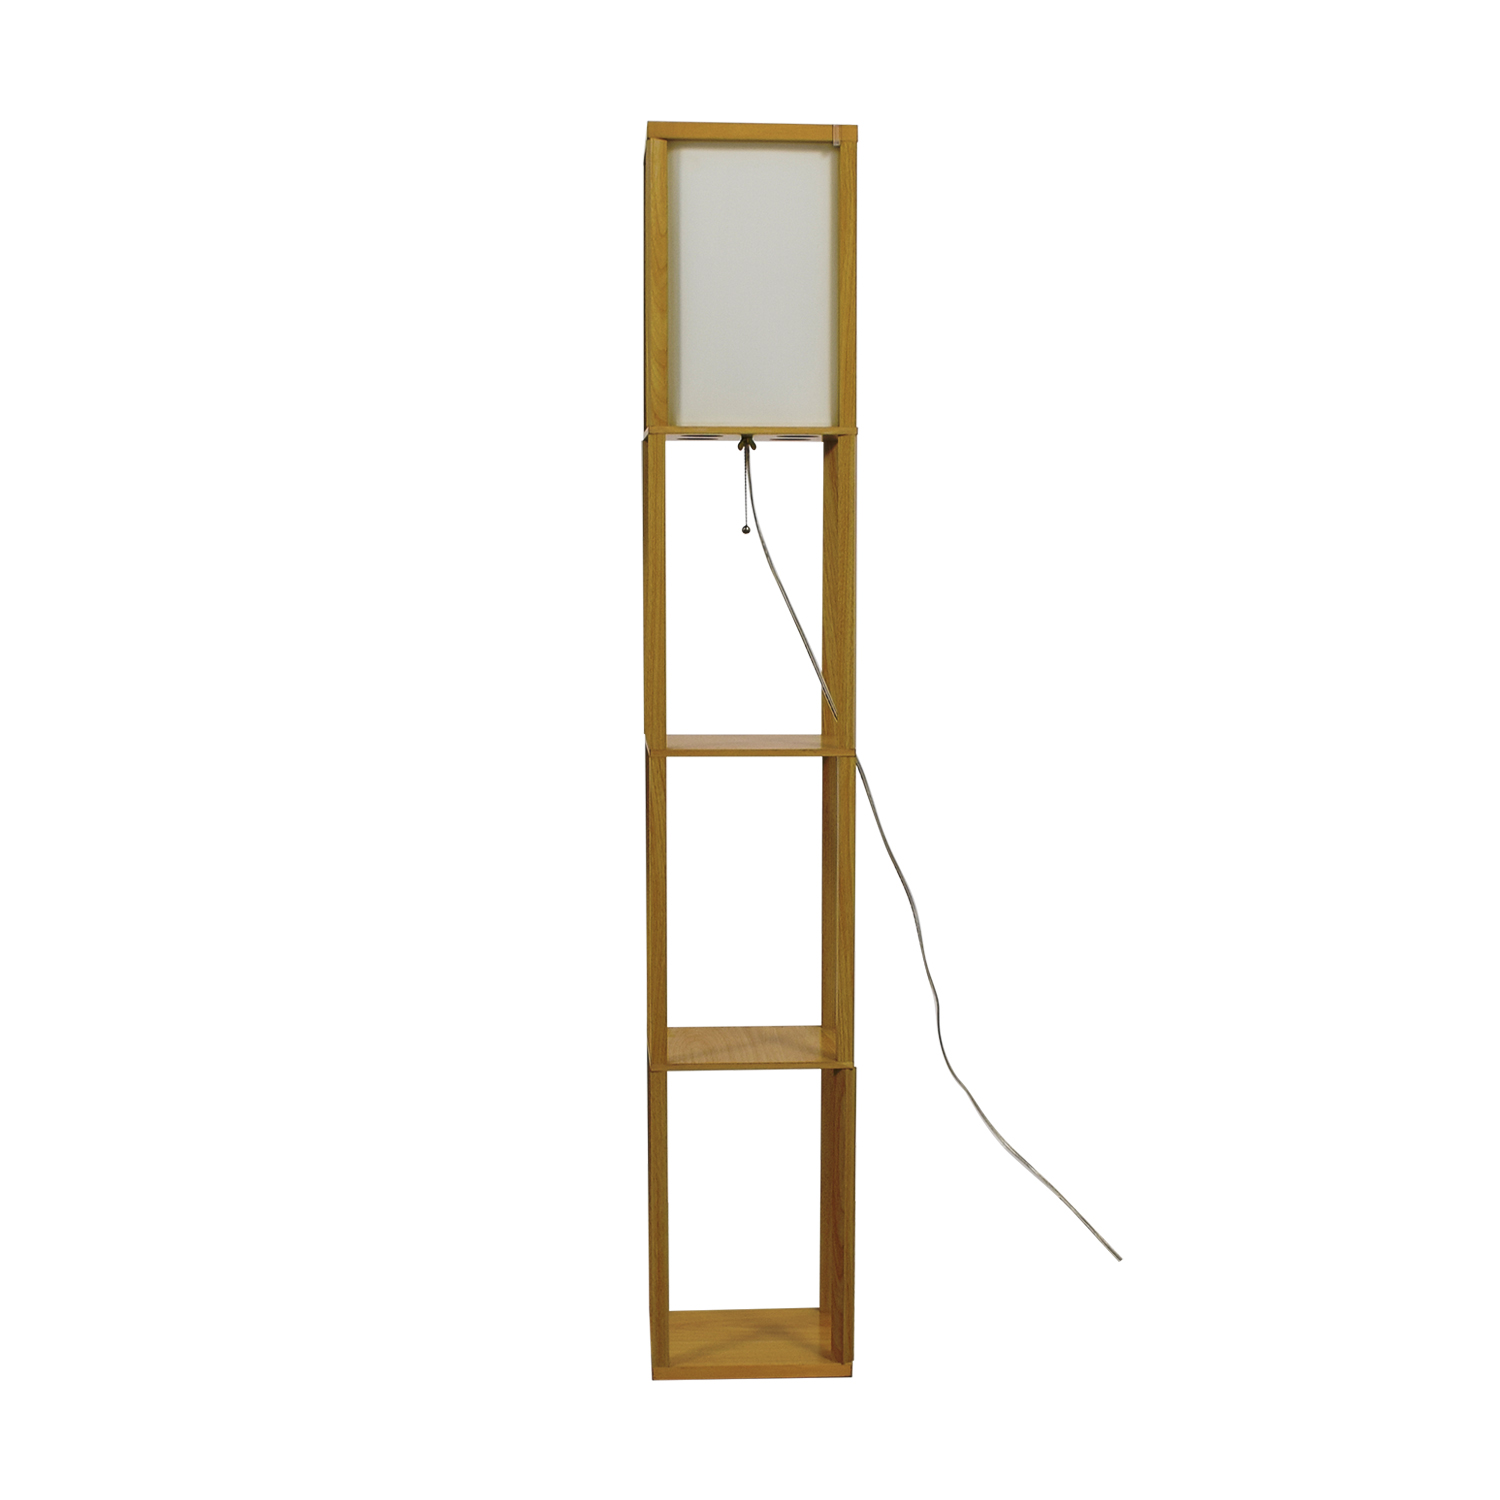 Light Accents Light Accents Wooden Floor Lamp with Linen Shade price